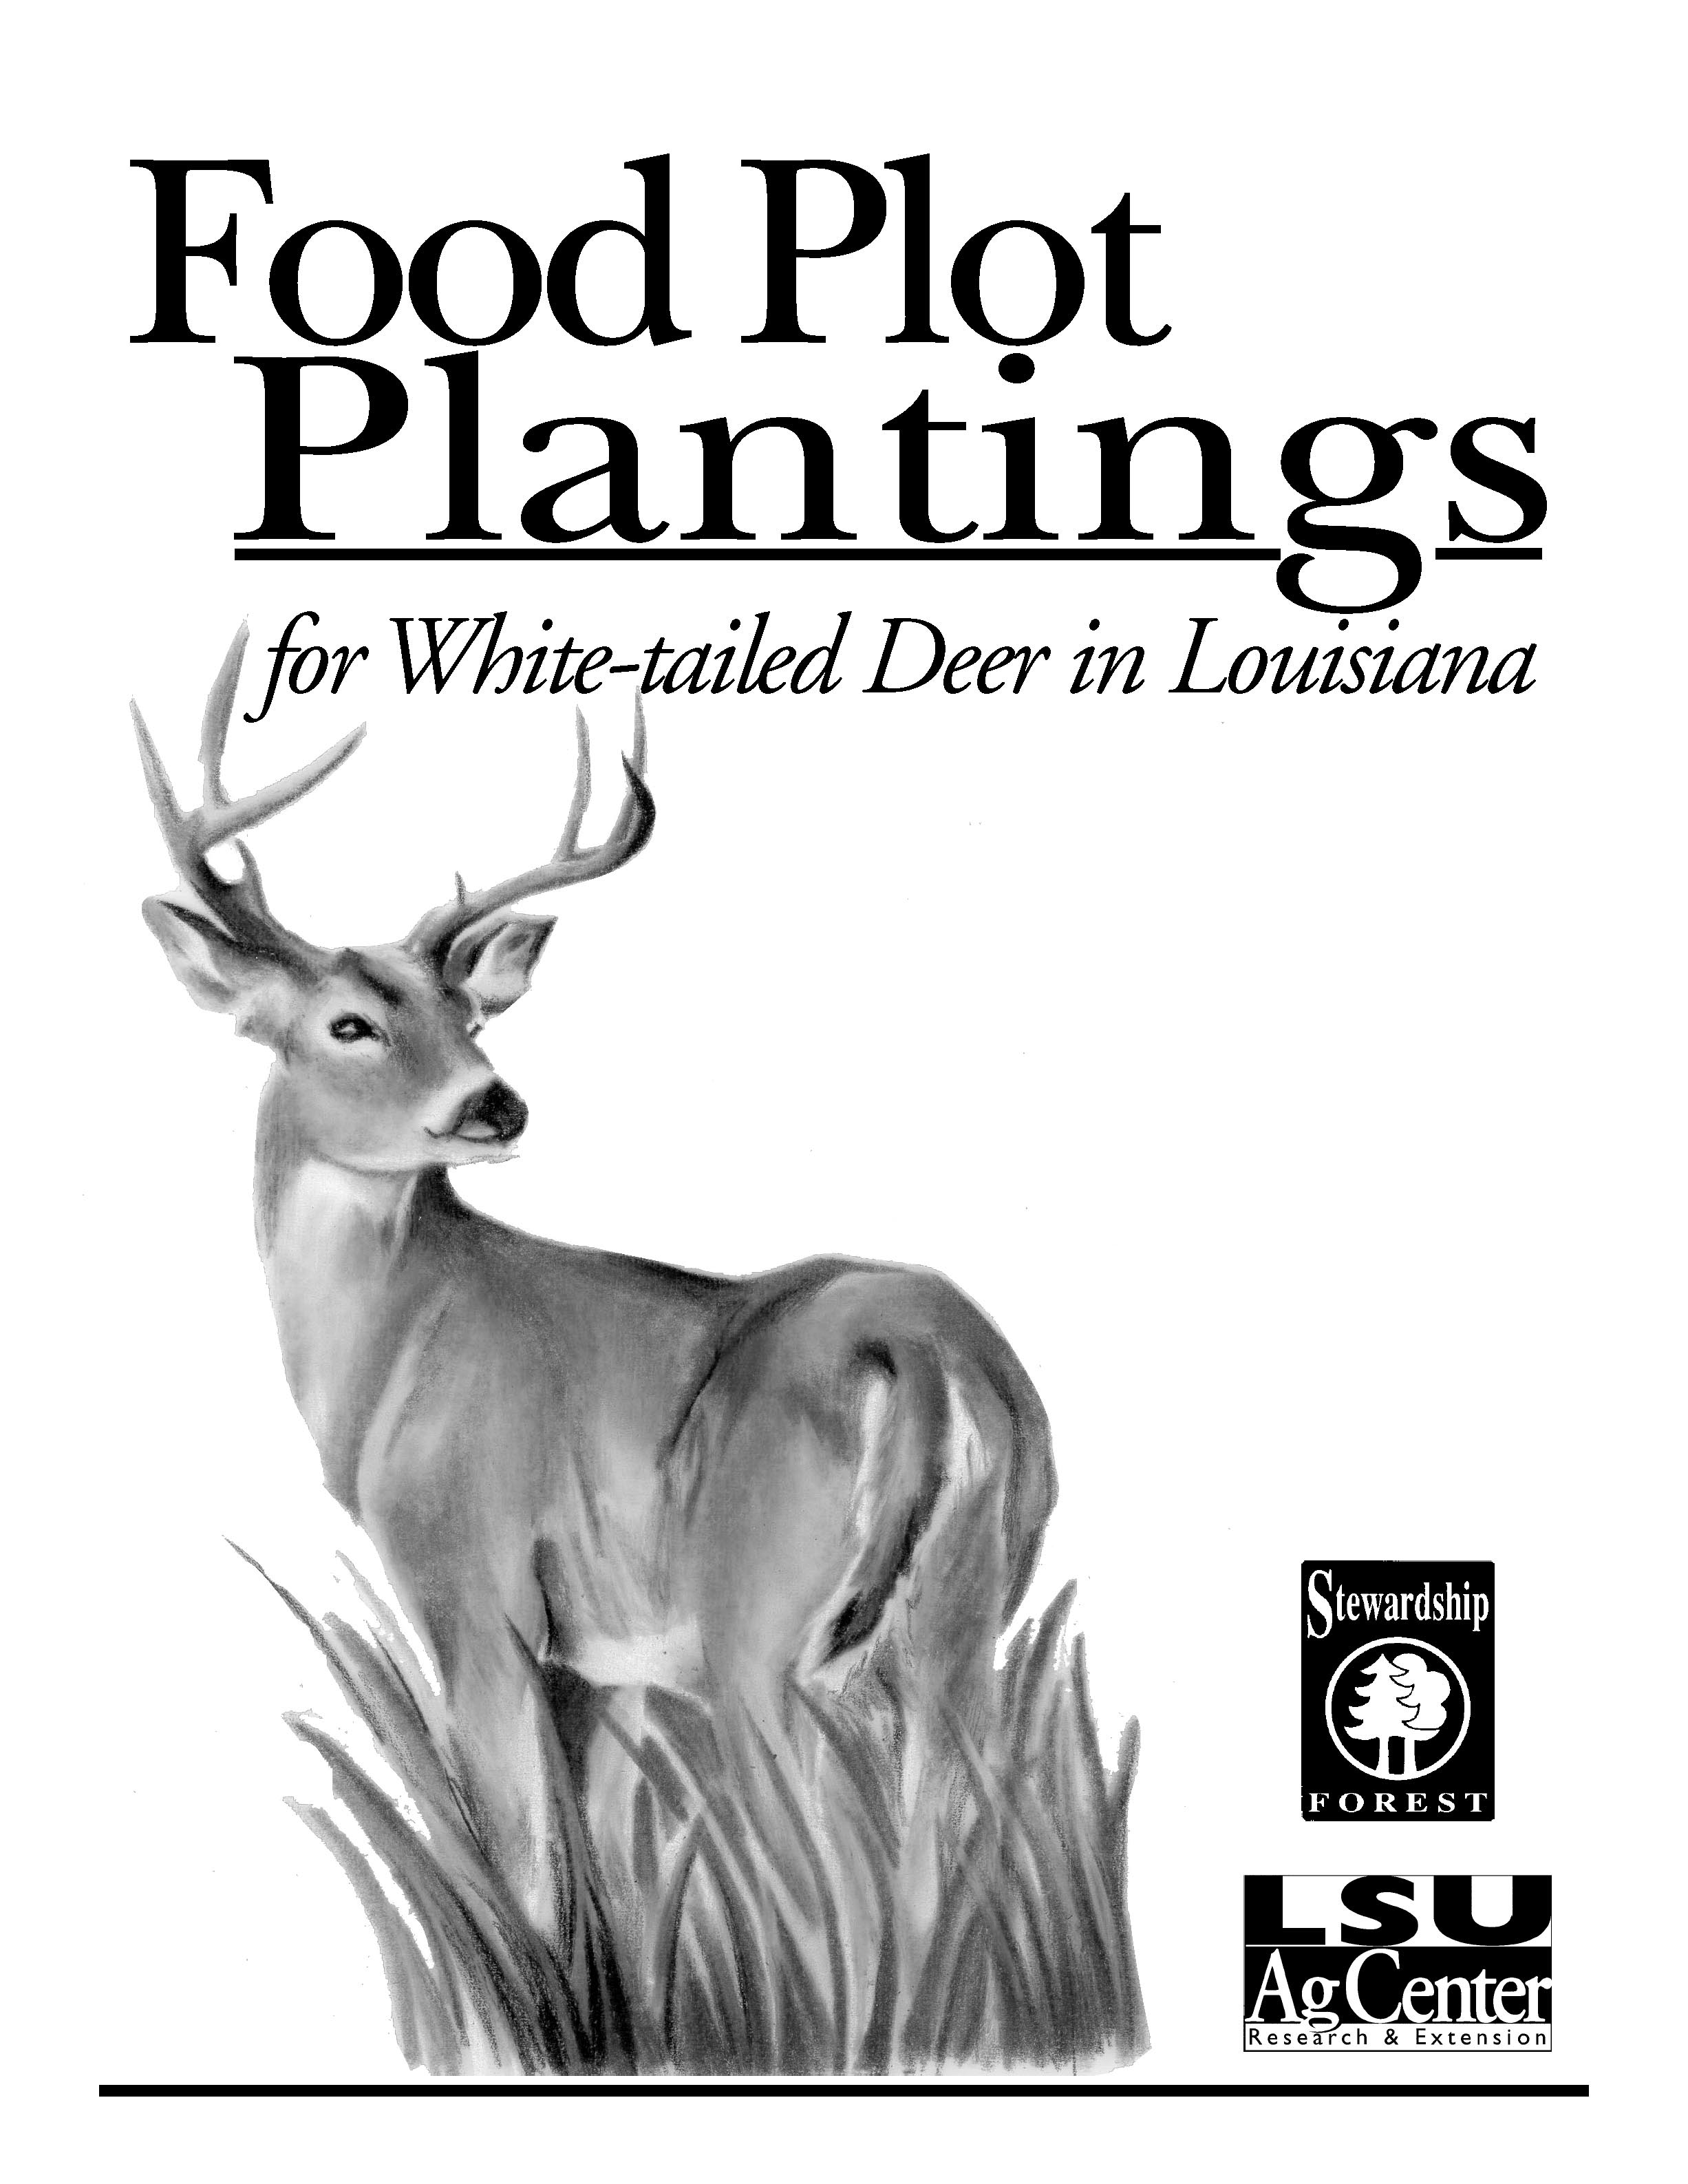 Food Plant Plantings for Whitetailed Deer in Louisiana